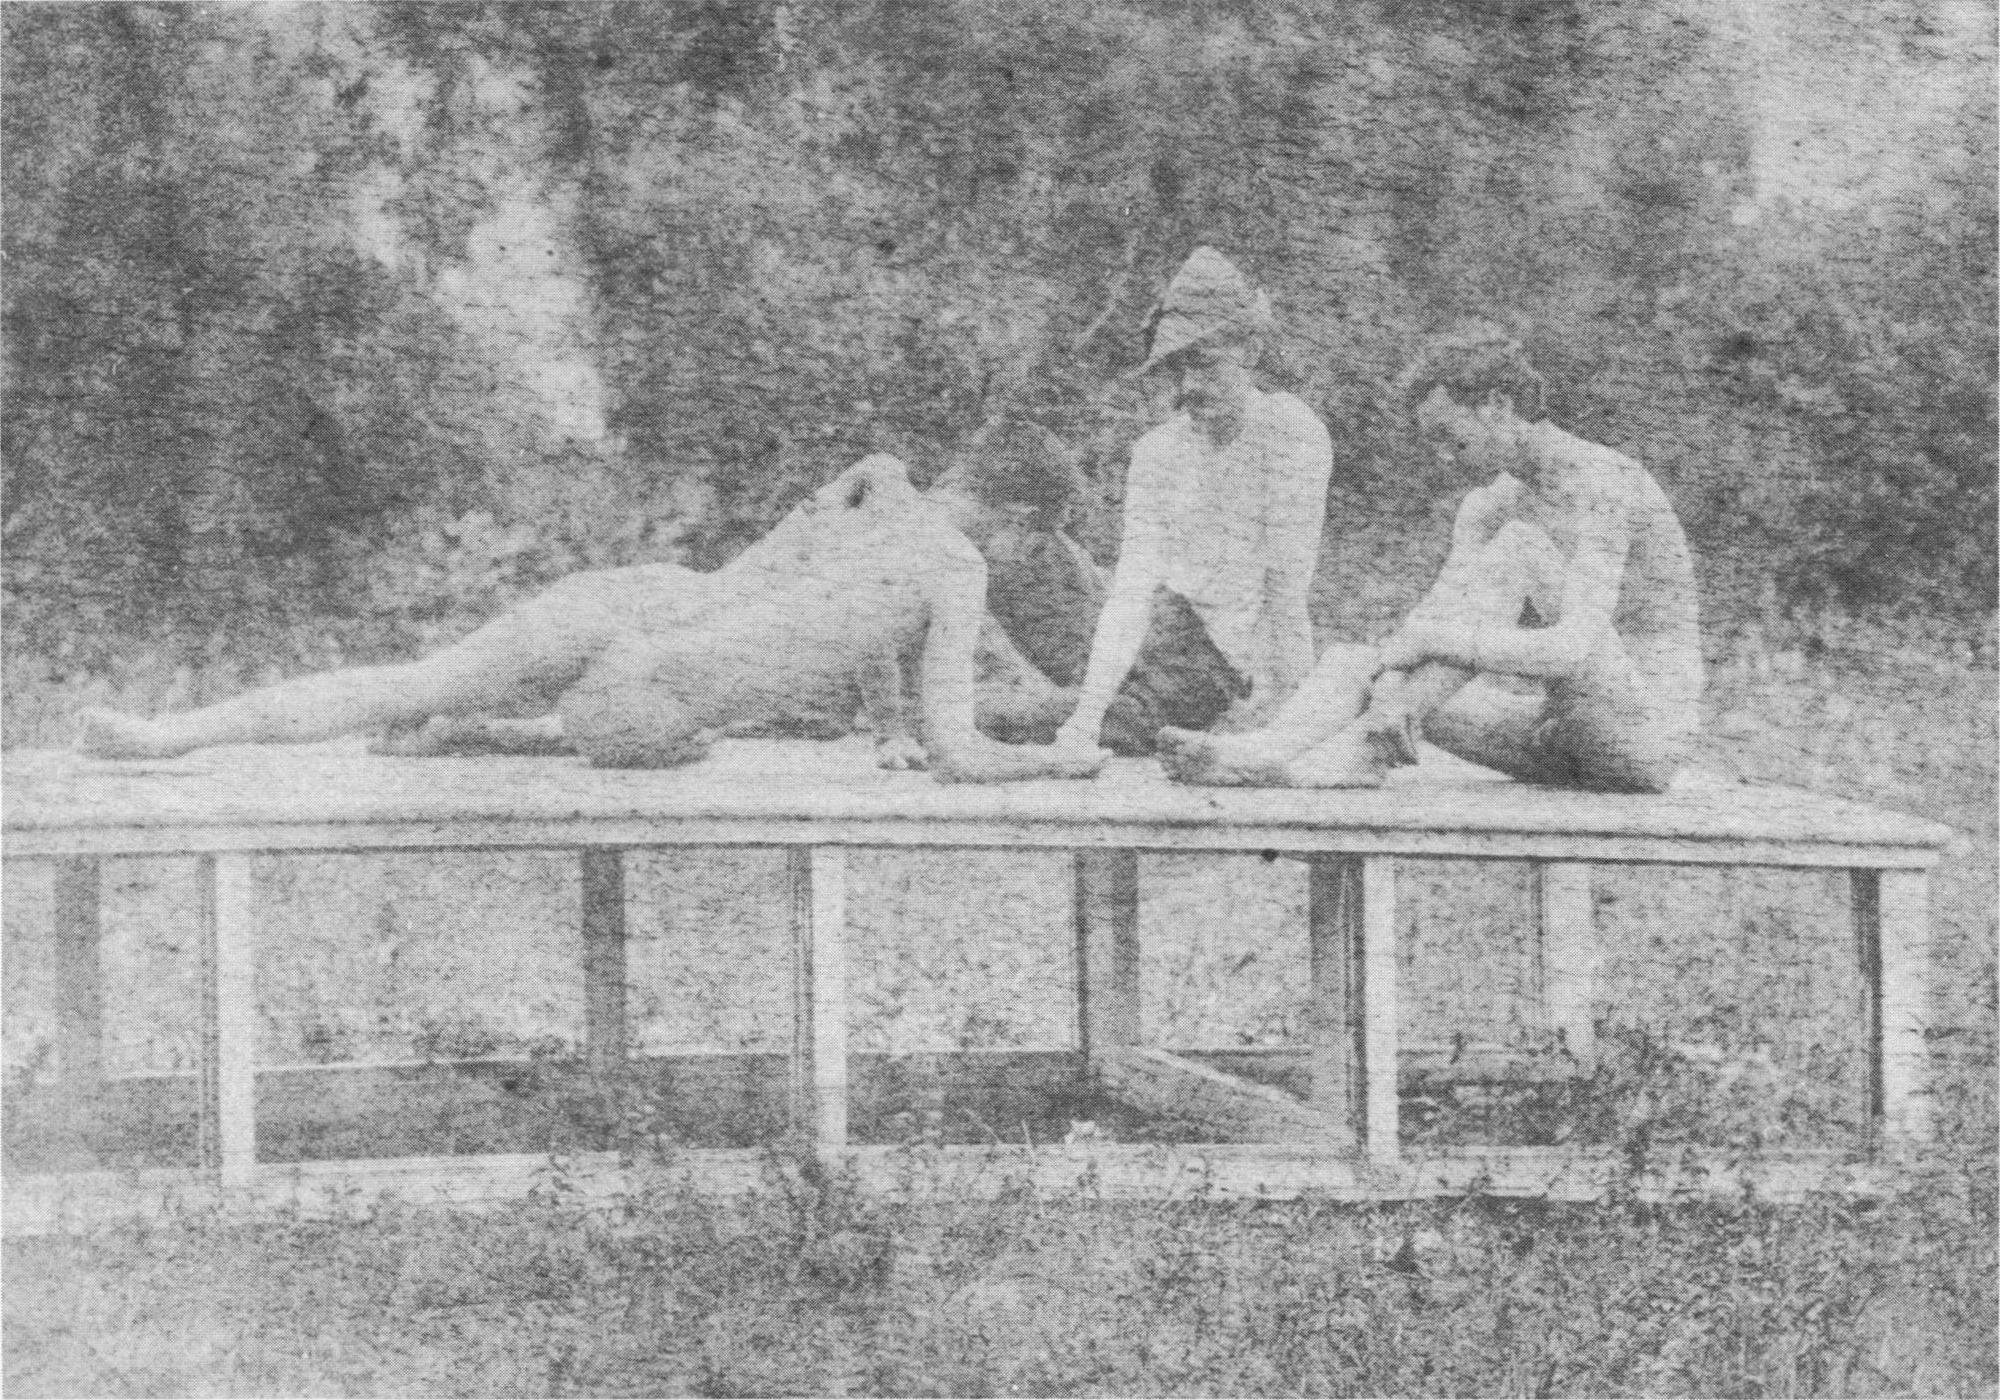 Thomas Eakins nude models 1 Here are some HD caps of Riki Lindhome, Sara Paxton and Martha MacIsaac from ...